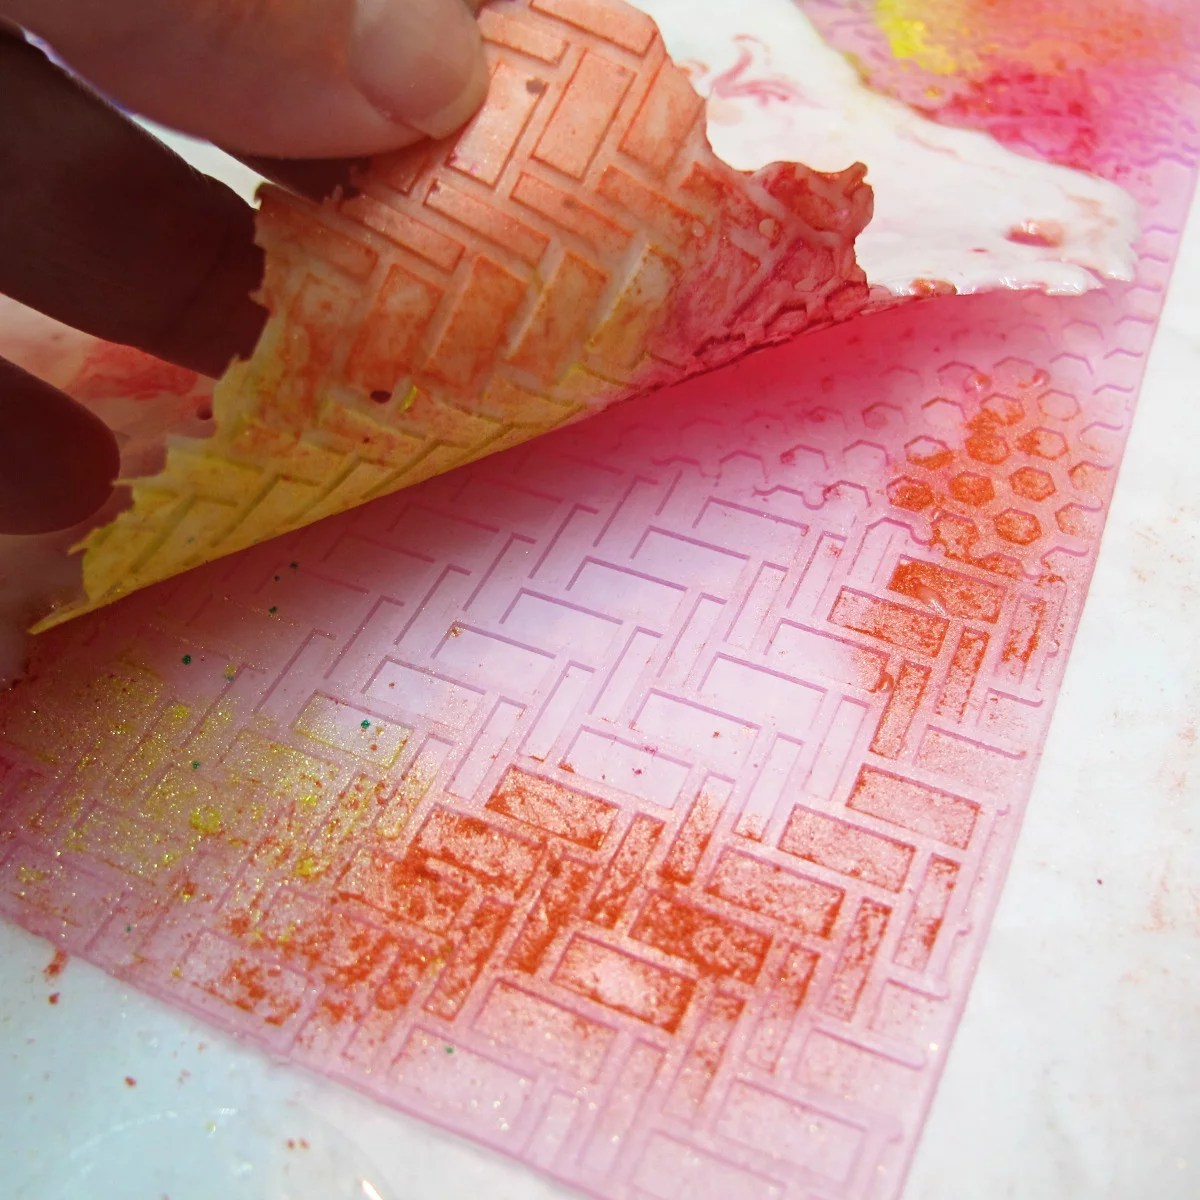 Peeling resin away from a rubber pad